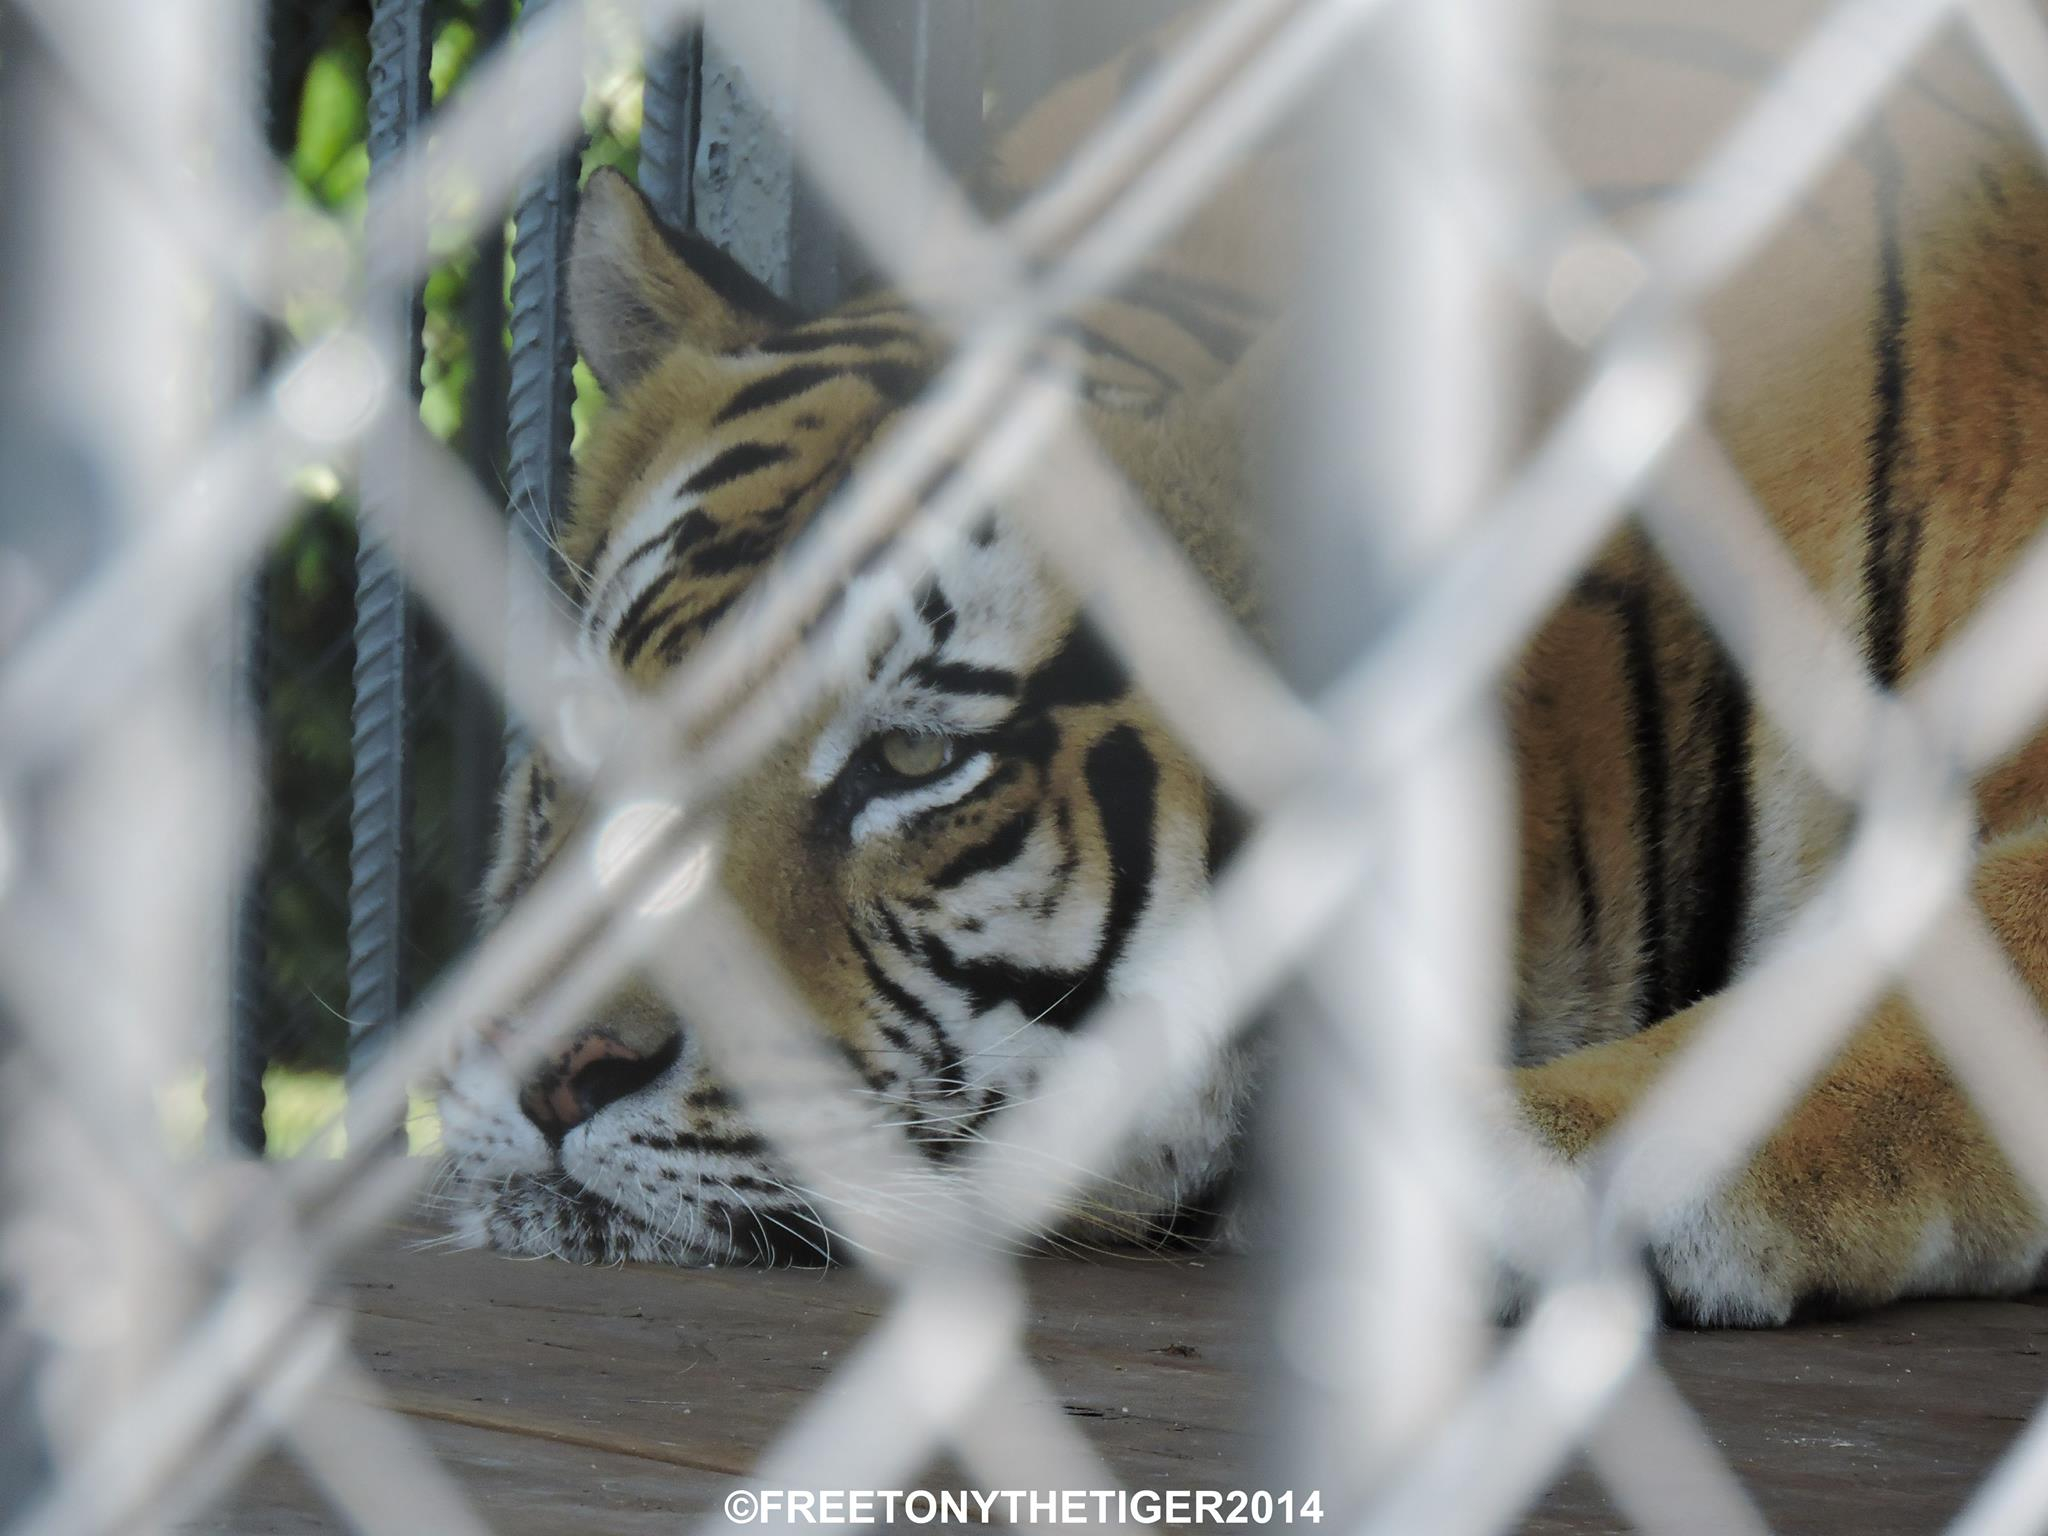 Roar for Tony the tiger & captive big cats in the US!